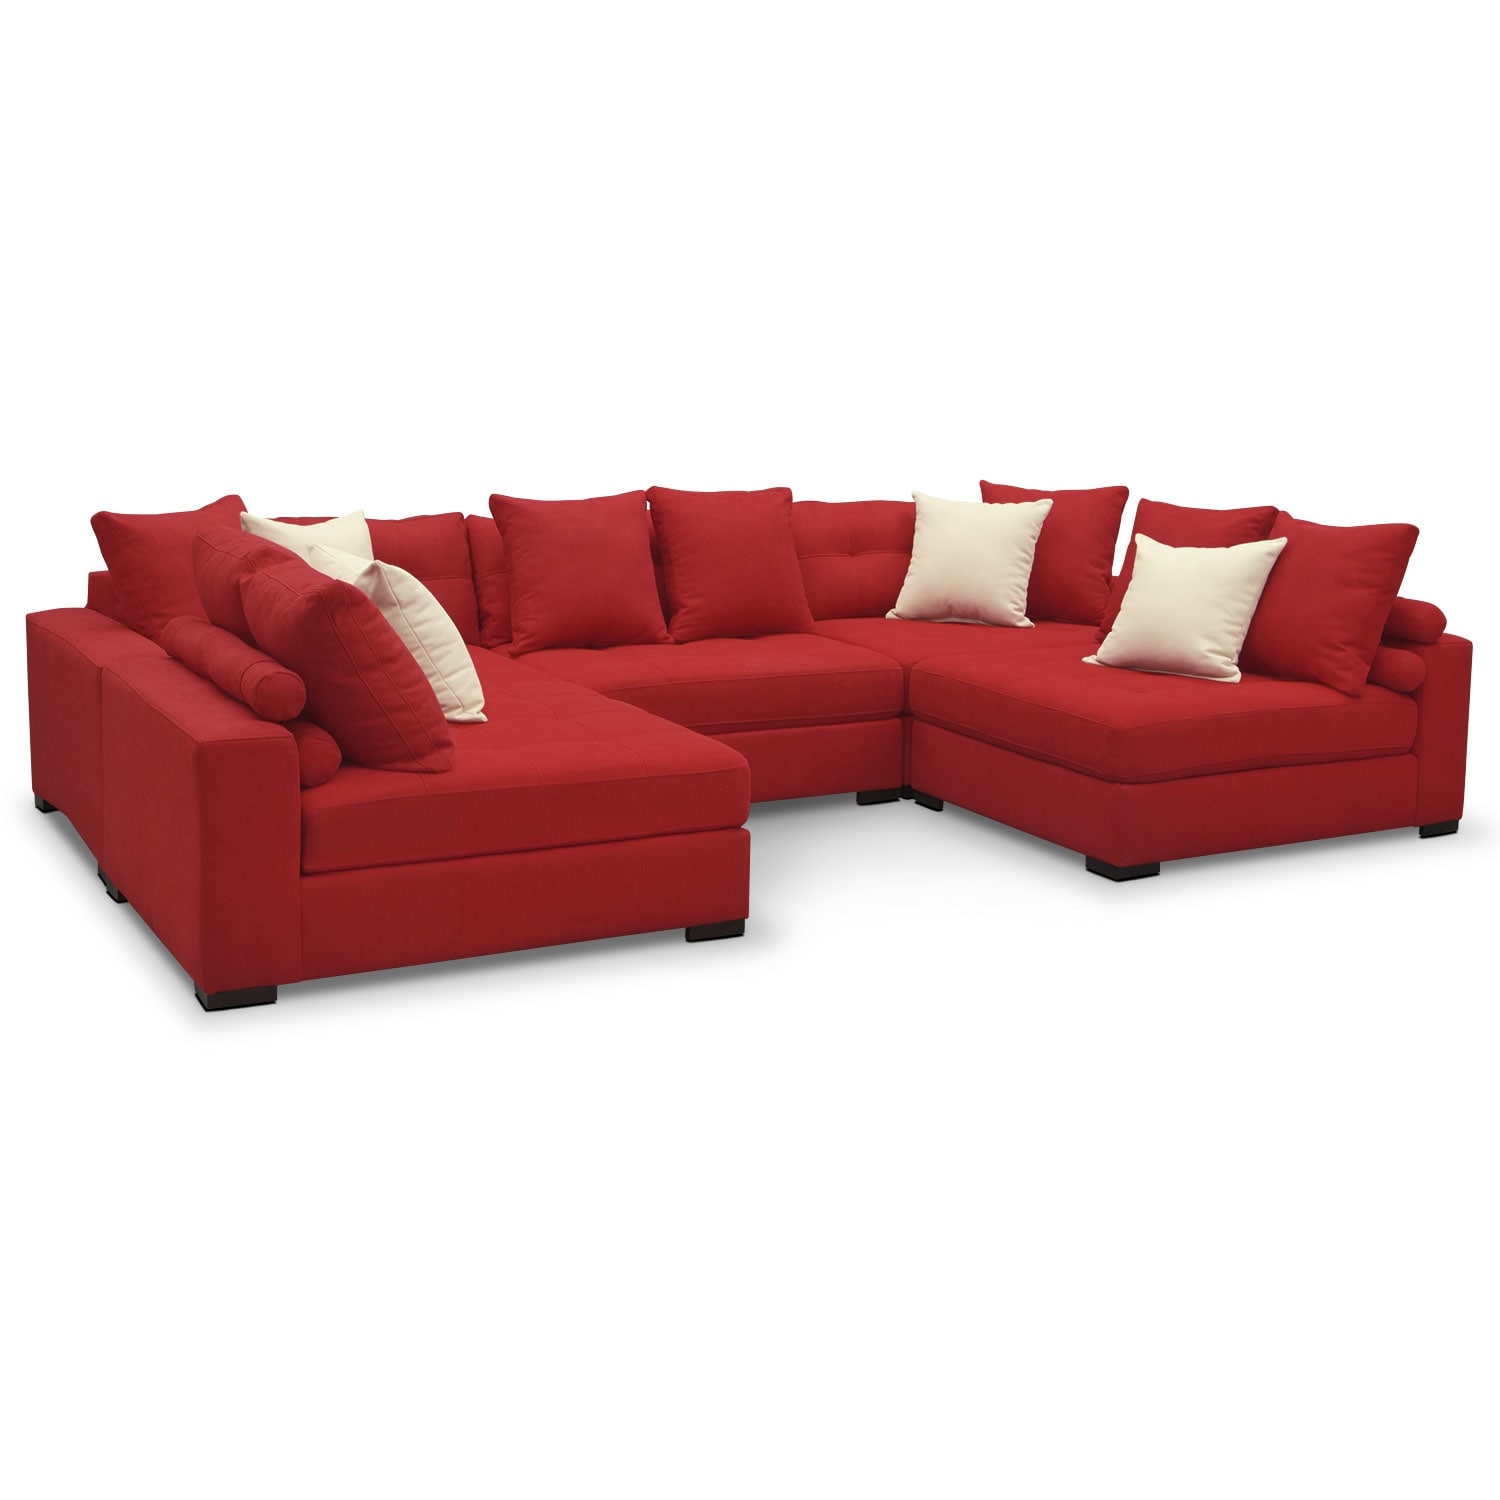 Venti red 5 pc sectional value city furniture for Red sectional sofa value city